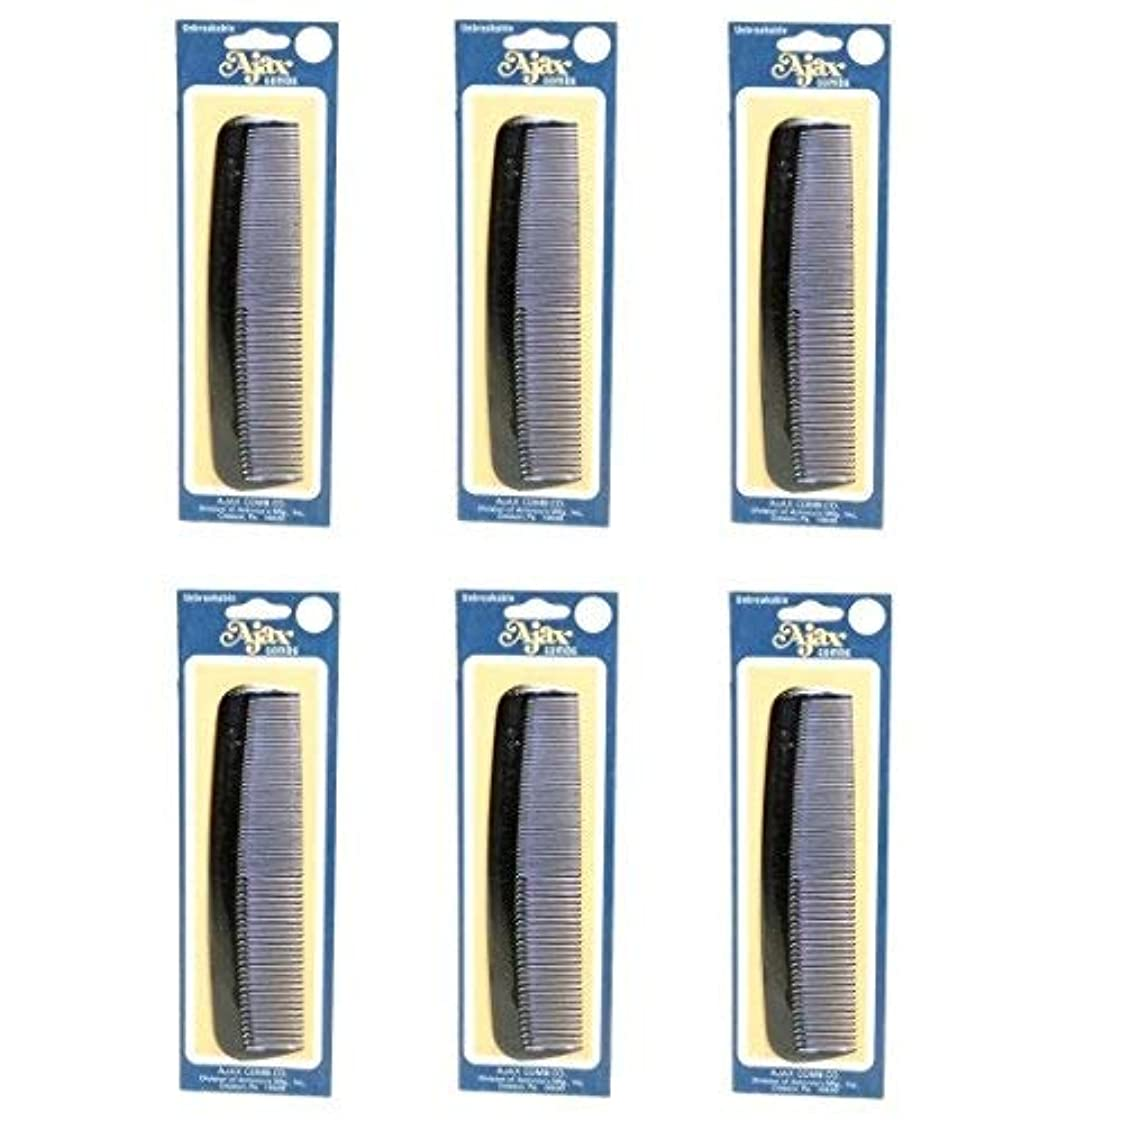 Ajax Unbreakable Hair Combs Super Flexible Pocket Sized Lifetime Guarantee - Proudly Made in the USA (Pack of...